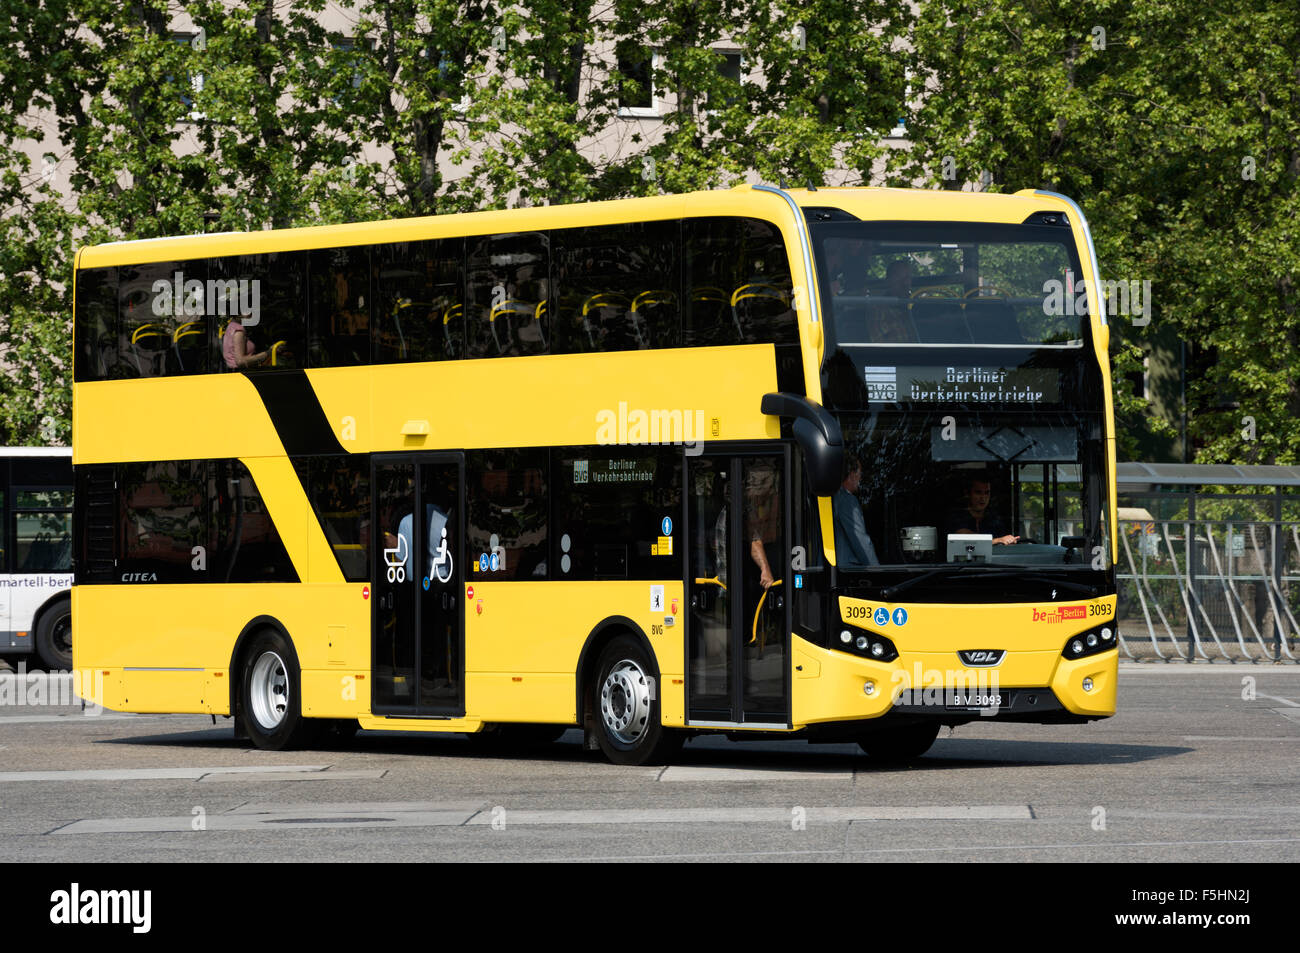 berlin germany liniendoppelstockbus the bvg on the bus depot stock photo royalty free image. Black Bedroom Furniture Sets. Home Design Ideas